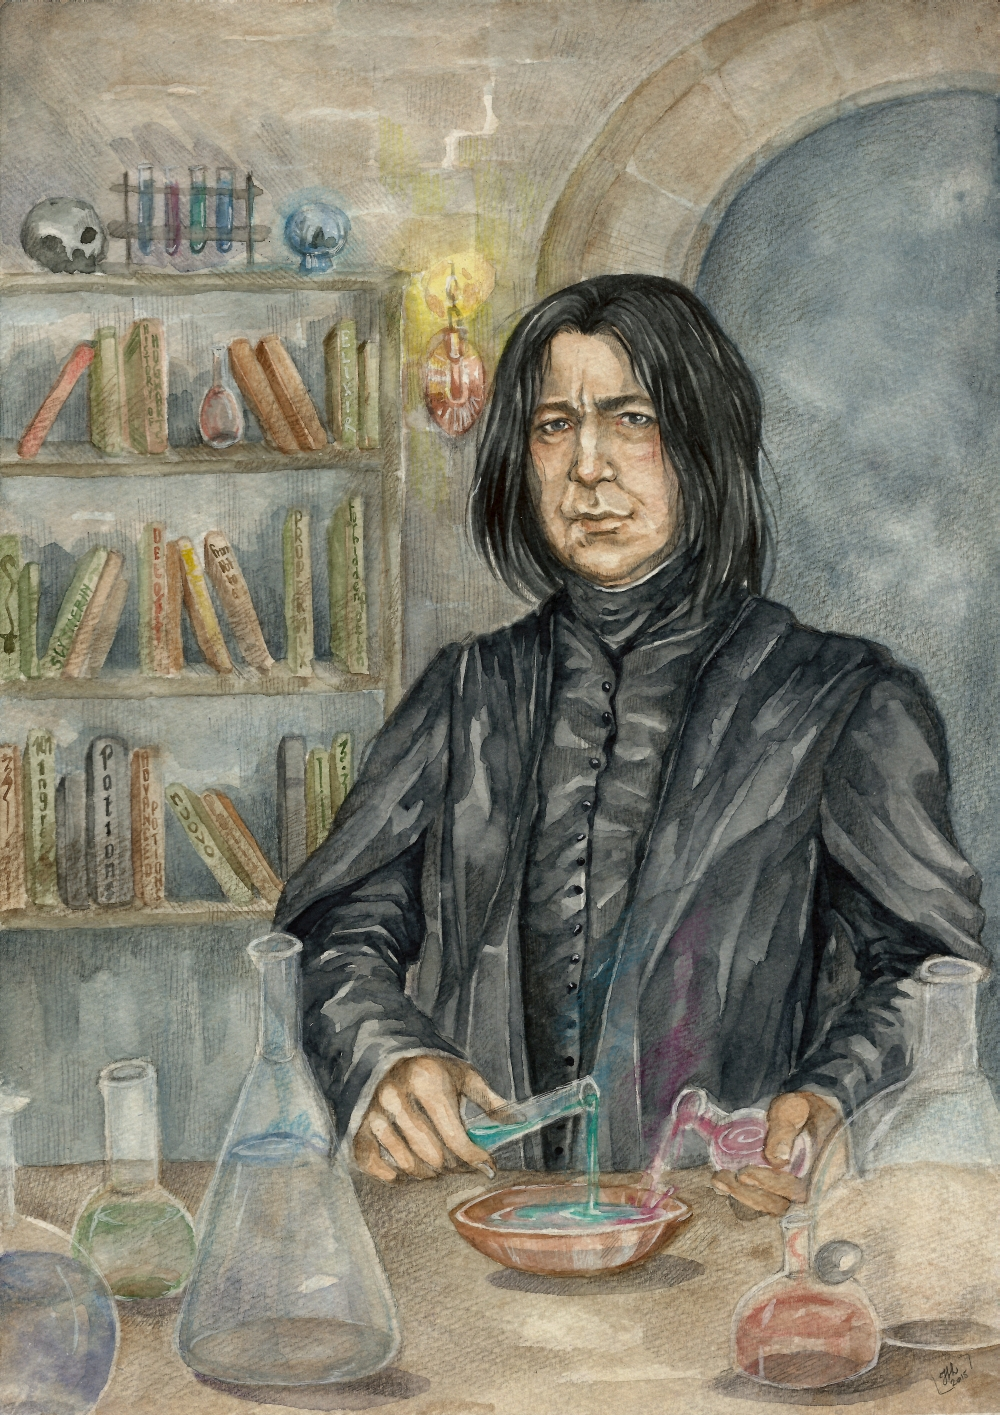 In Honor of Alan Rickman: 15 Stunning Severus Snape Fan Art